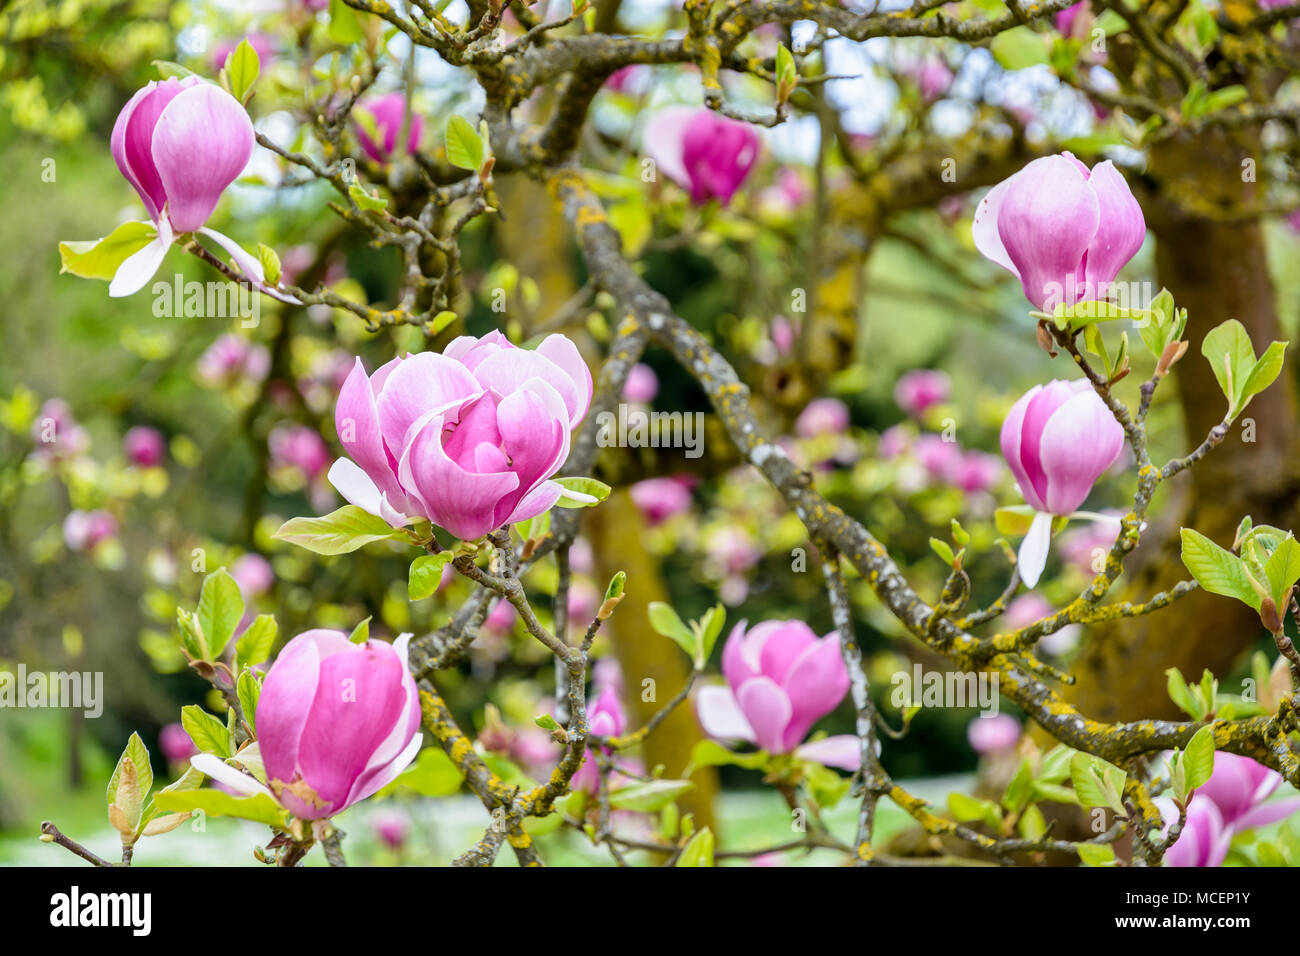 Close up view of the big purple flowers of a magnolia with a shallow close up view of the big purple flowers of a magnolia with a shallow depth of field stock photo 179804183 alamy mightylinksfo Images